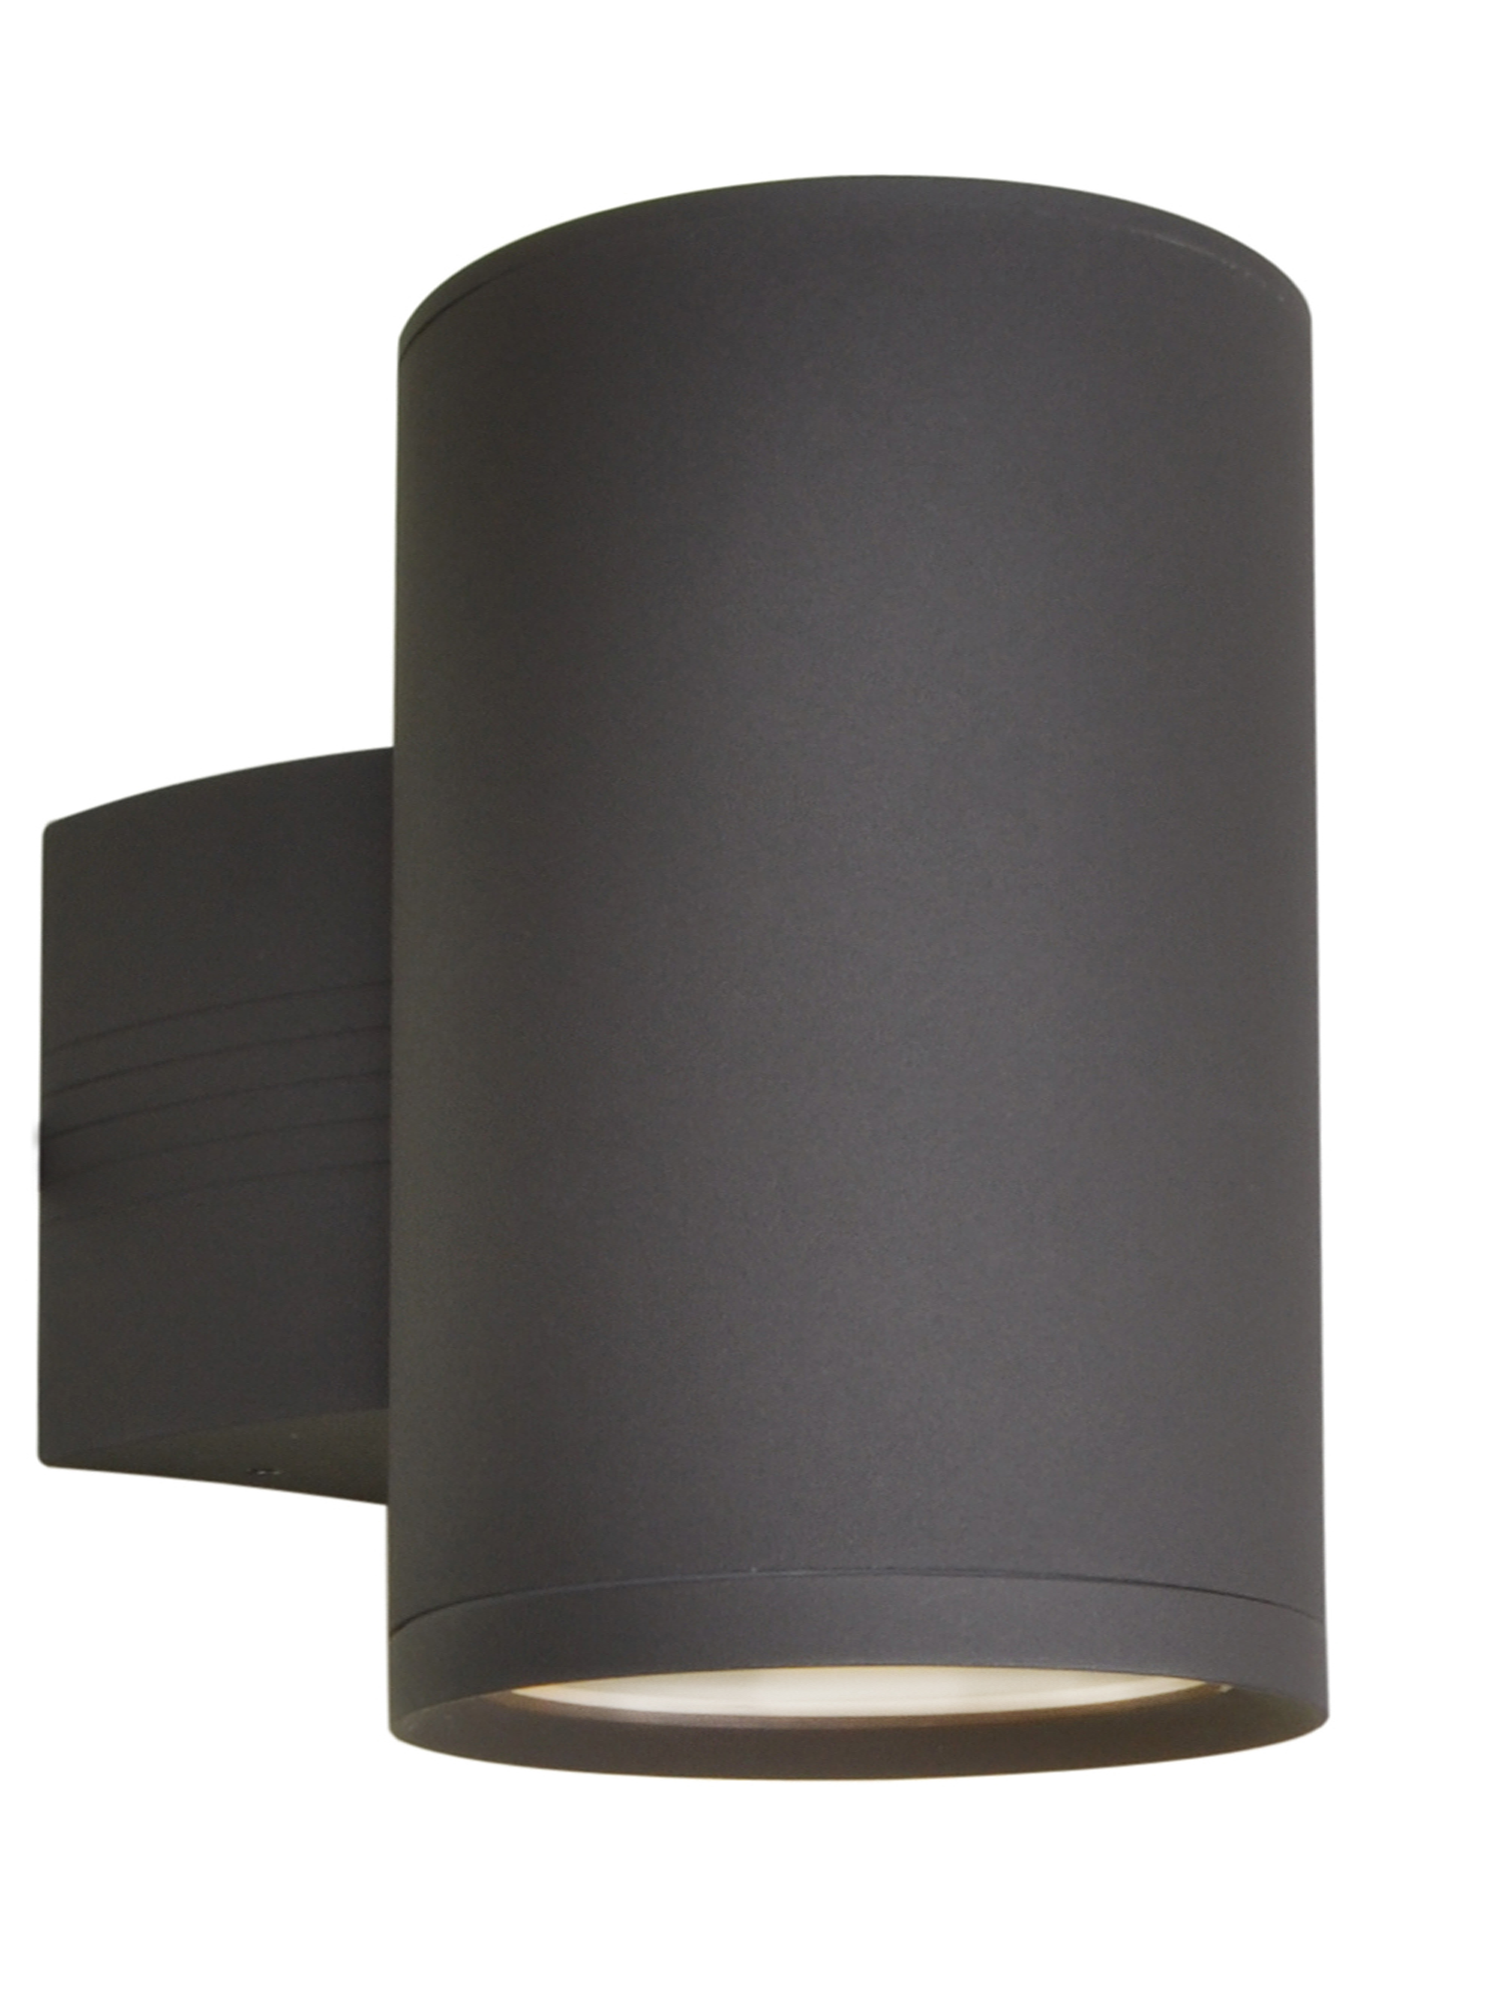 Lightray Plain Outdoor Wall Light Image